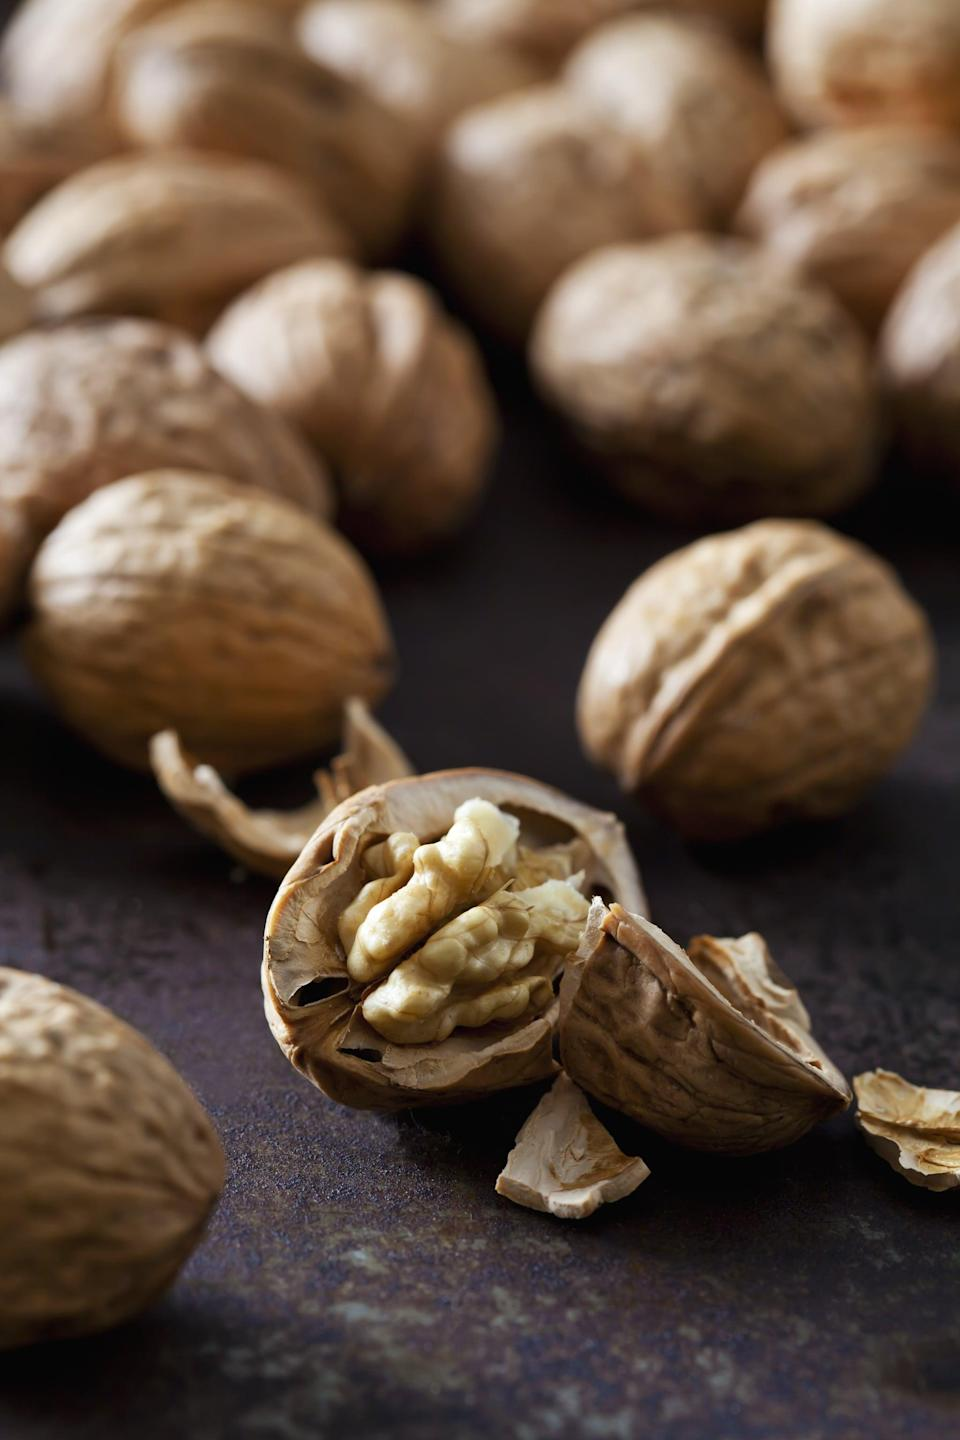 "<p>Walnuts contain <a href=""http://walnuts.org/nutrition/nutrition-info/protein-fiber-magnesium-and-phosphorous/"" class=""link rapid-noclick-resp"" rel=""nofollow noopener"" target=""_blank"" data-ylk=""slk:44 milligrams of magnesium per ounce"">44 milligrams of magnesium per ounce</a>, making them a great plant-based source of this important mineral. They're also rich in omega-3 fatty acids and fiber, and data suggests that making walnuts a regular part of your diet can <a href=""http://www.mdpi.com/2072-6643/10/2/244"" class=""link rapid-noclick-resp"" rel=""nofollow noopener"" target=""_blank"" data-ylk=""slk:improve gut health"">improve gut health</a>.</p> <p>If you suffer from depressive symptoms, eating walnuts may help in that department, too. In one study evaluating more than 25,000 people, <a href=""http://www.mdpi.com/2072-6643/11/2/275"" class=""link rapid-noclick-resp"" rel=""nofollow noopener"" target=""_blank"" data-ylk=""slk:depression scores were significantly lower among those who ate nuts"">depression scores were significantly lower among those who ate nuts</a> - and particularly among those who ate walnuts - compared to those who didn't.</p>"